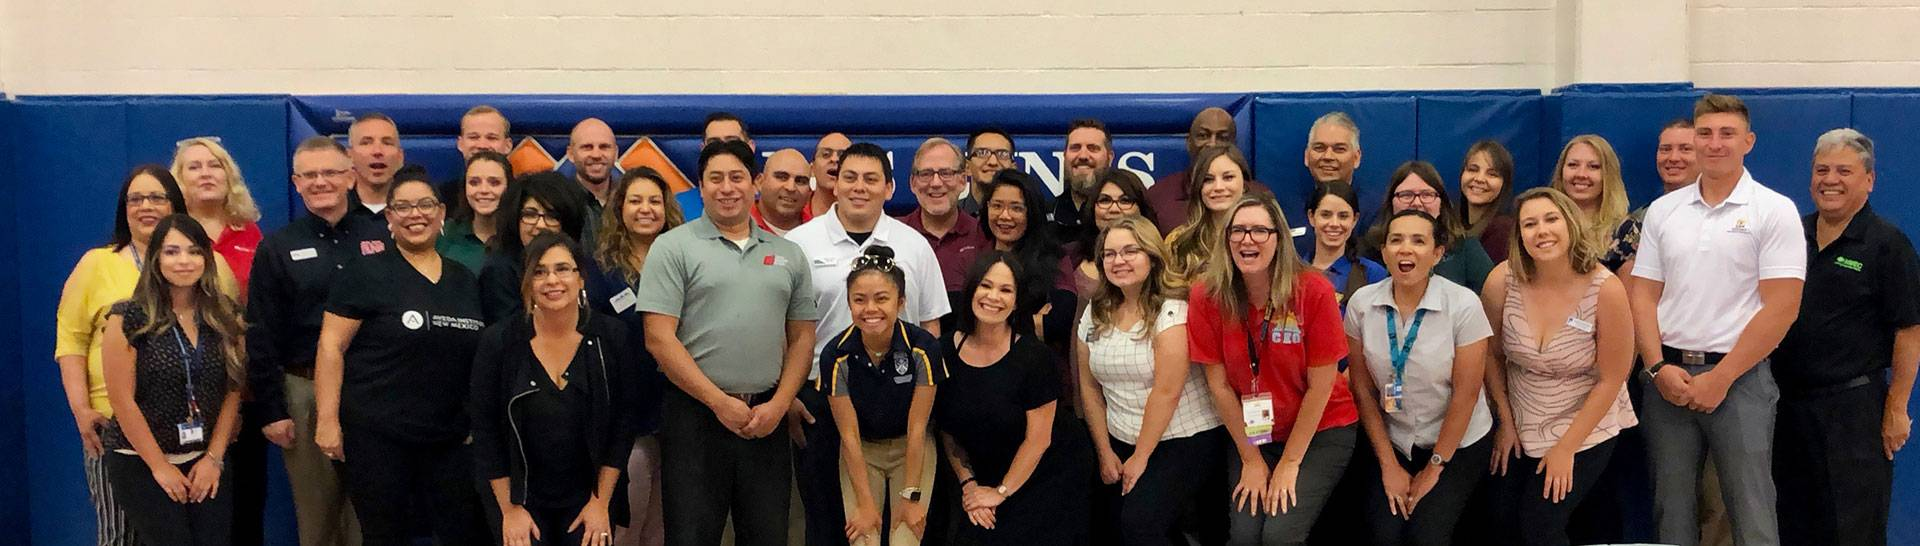 College Recruiters people as a group photo at Los Lunas High School